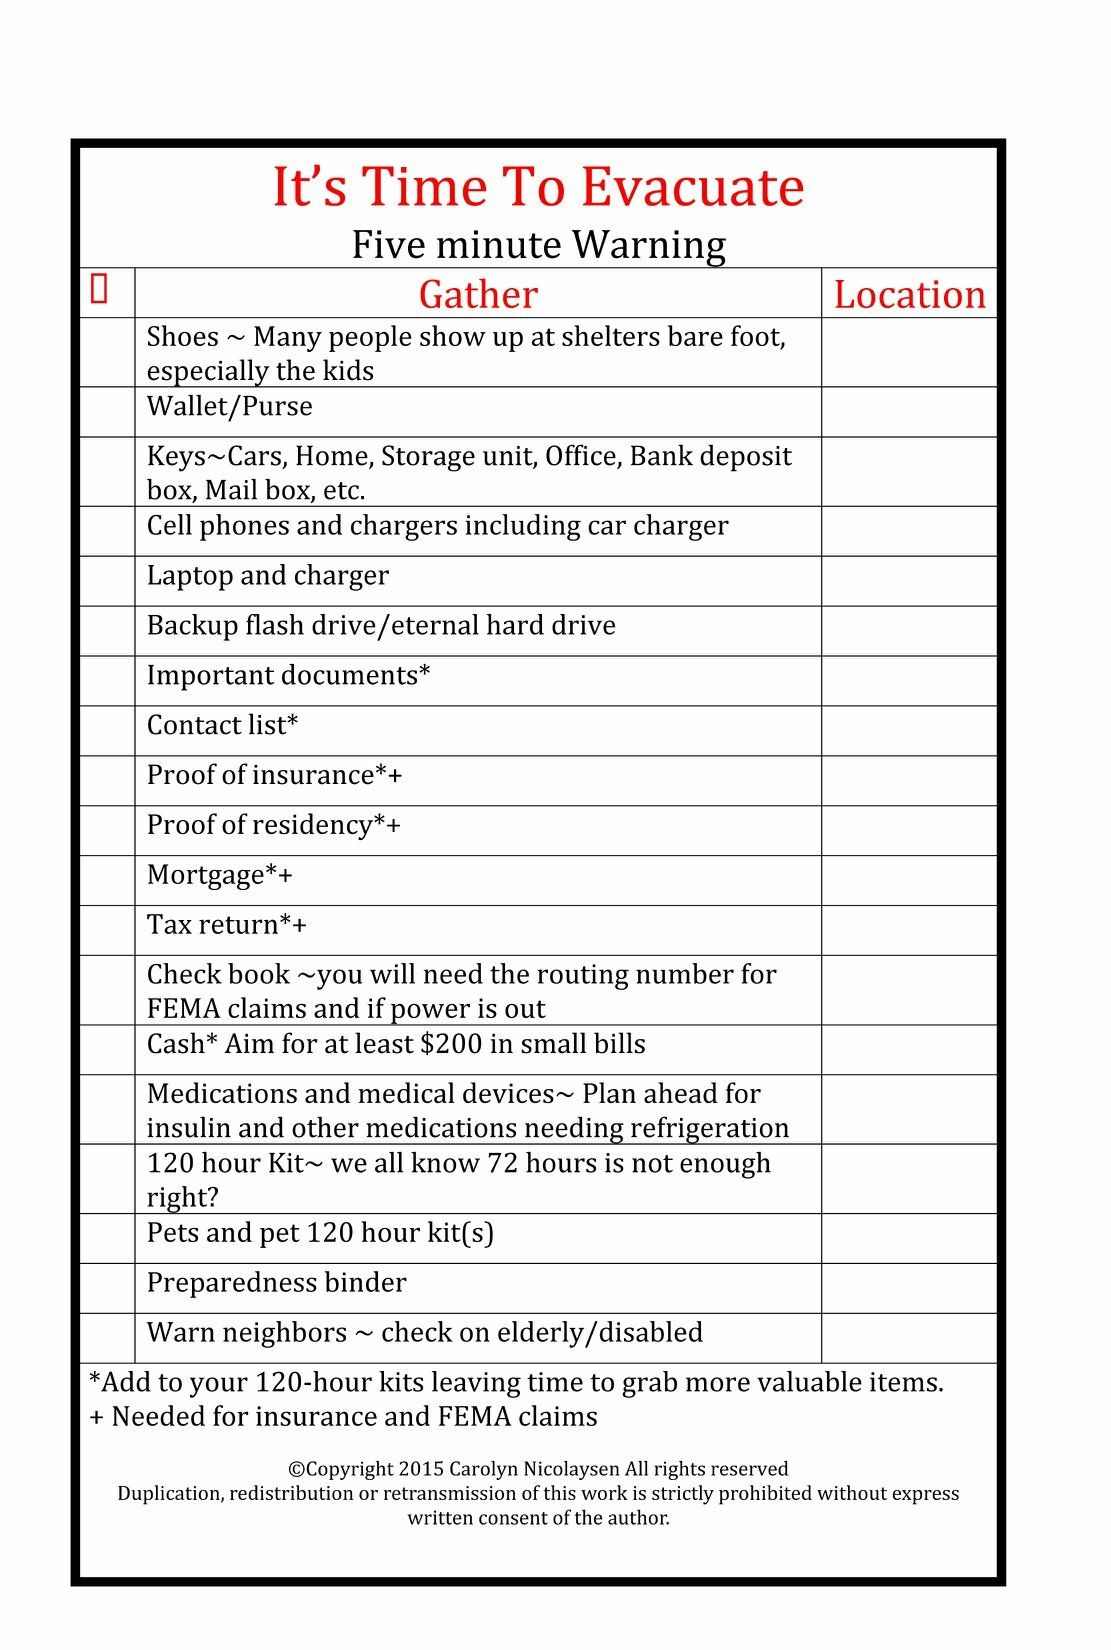 Pin By Amy Ayres On Prepared Emergency Prepardness Emergency Preparedness Kit Emergency Plan